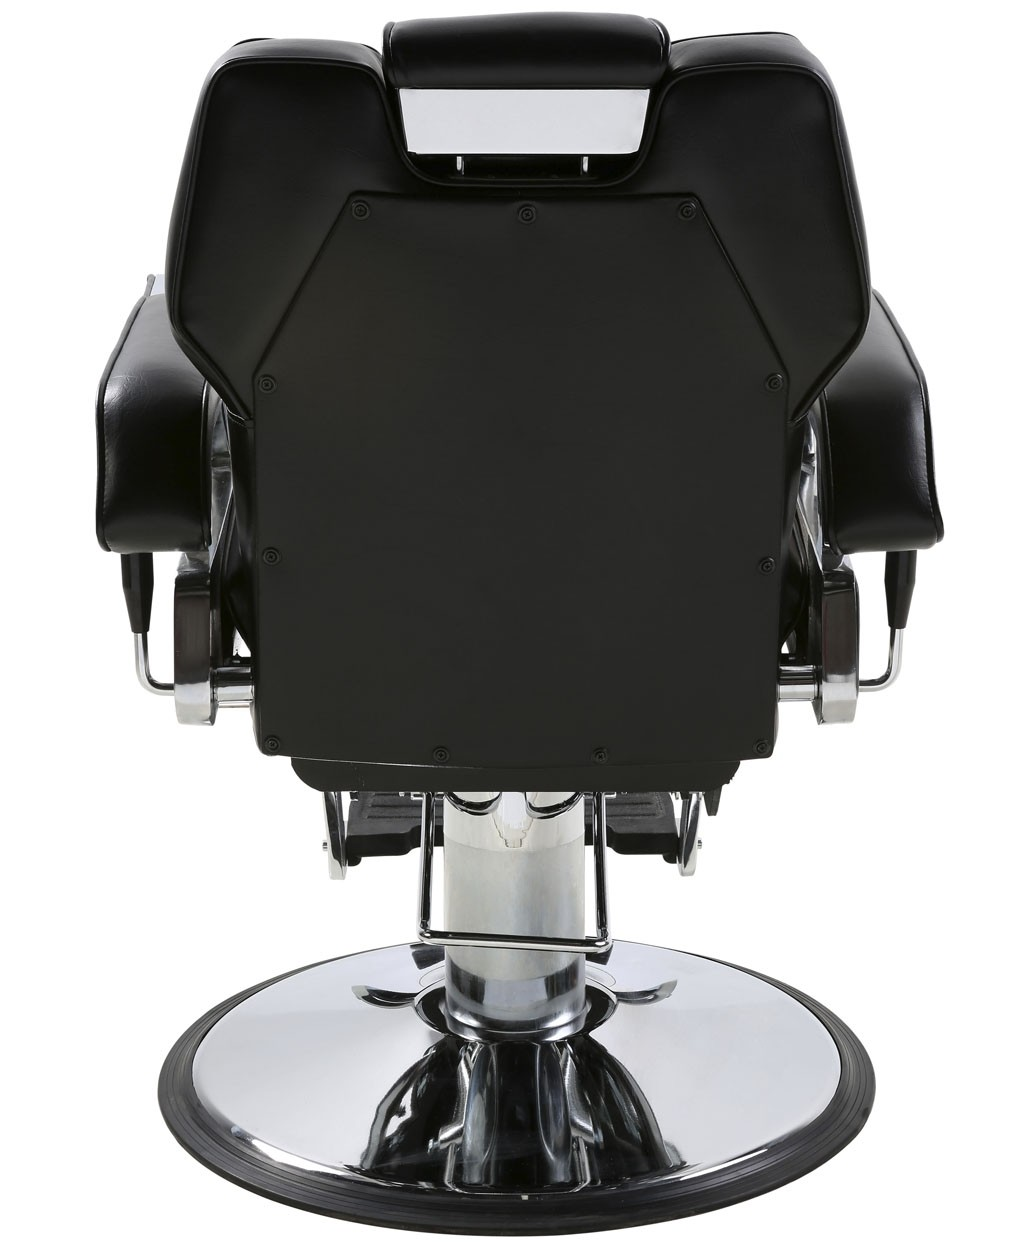 Barber Chairs Generous New Hairdressing Chair Rotatable Barber Chair Lifting Handle Chair Hair Salon Special Haircut Chair Various Styles Furniture